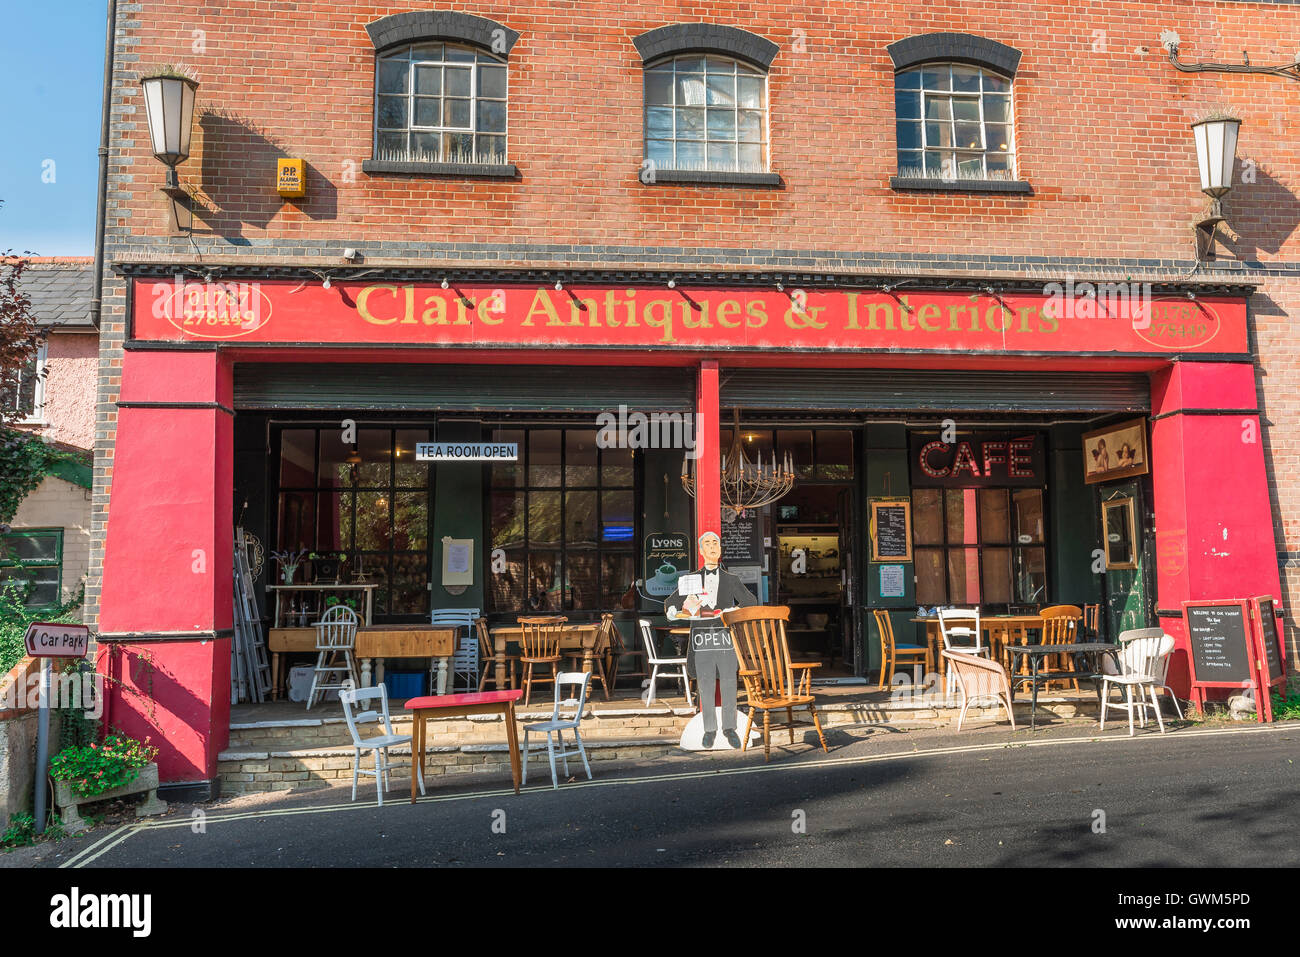 Clare Suffolk antiques, an antiques and furniture warehouse in the village of Clare, Suffolk, England, Babergh district, - Stock Image